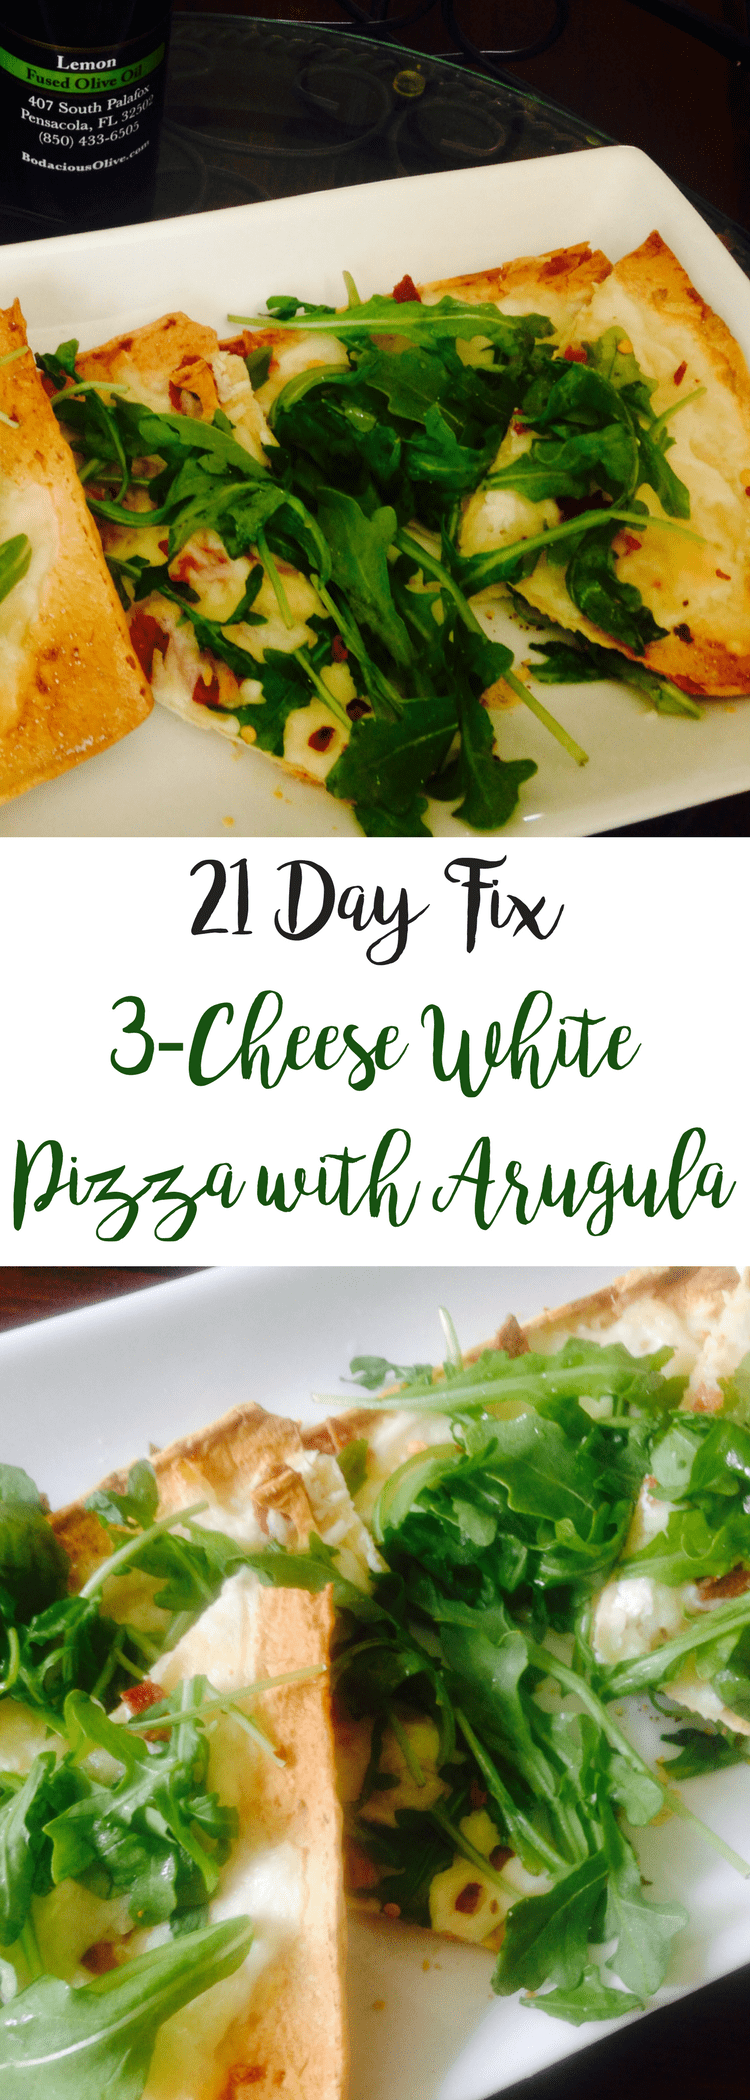 3-Cheese White Pizza with Arugula {21 Day Fix} | Confessions of a Fit Foodie